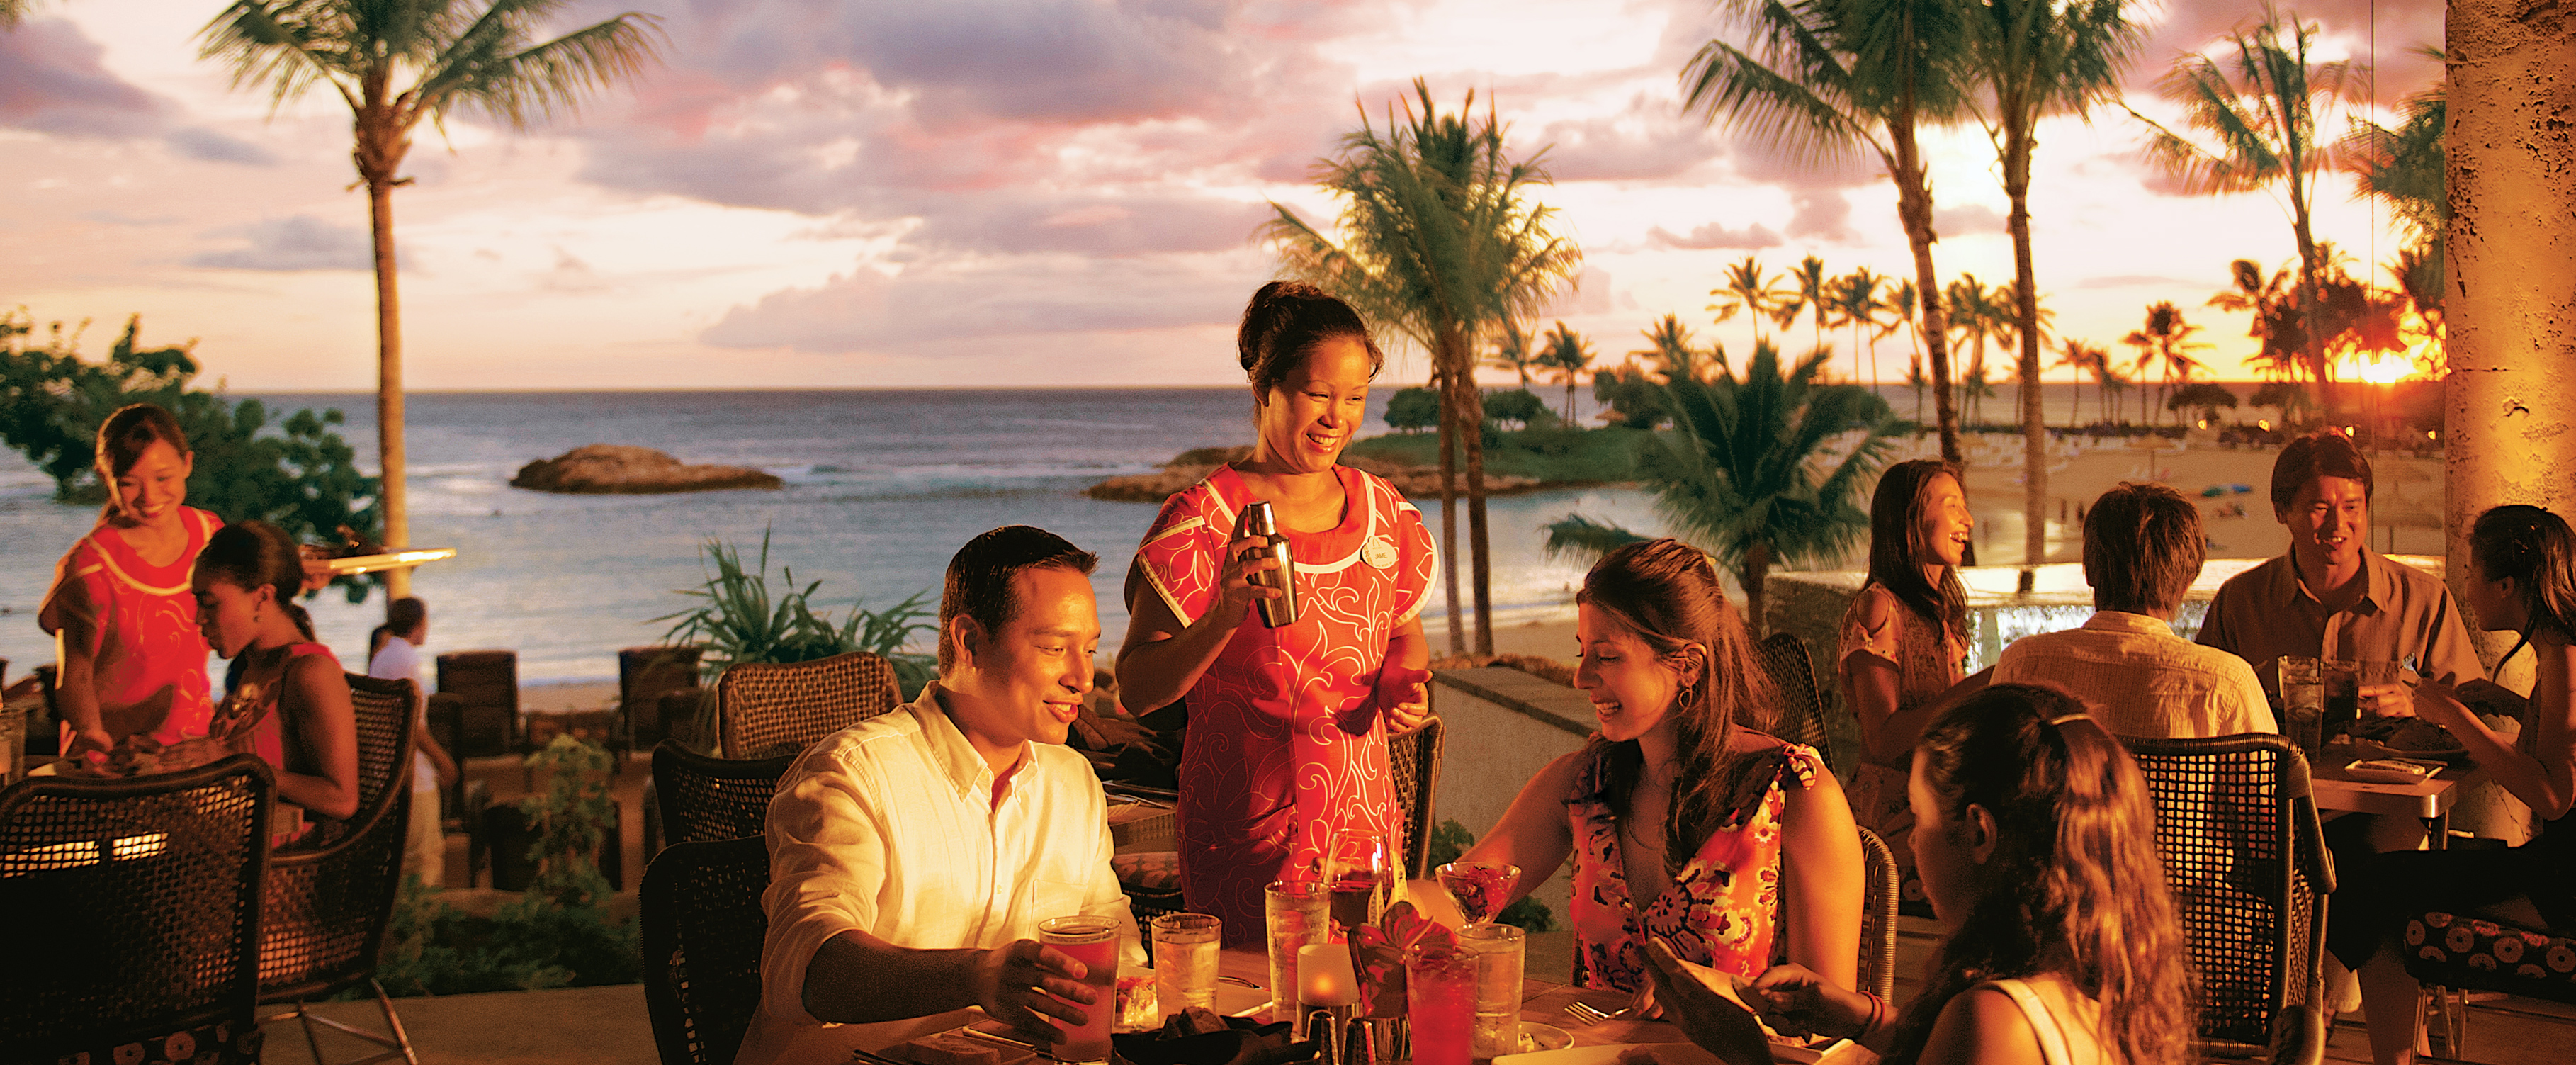 A friendly server tends to a father, mother and daughter at an outdoor table with sunset ocean views